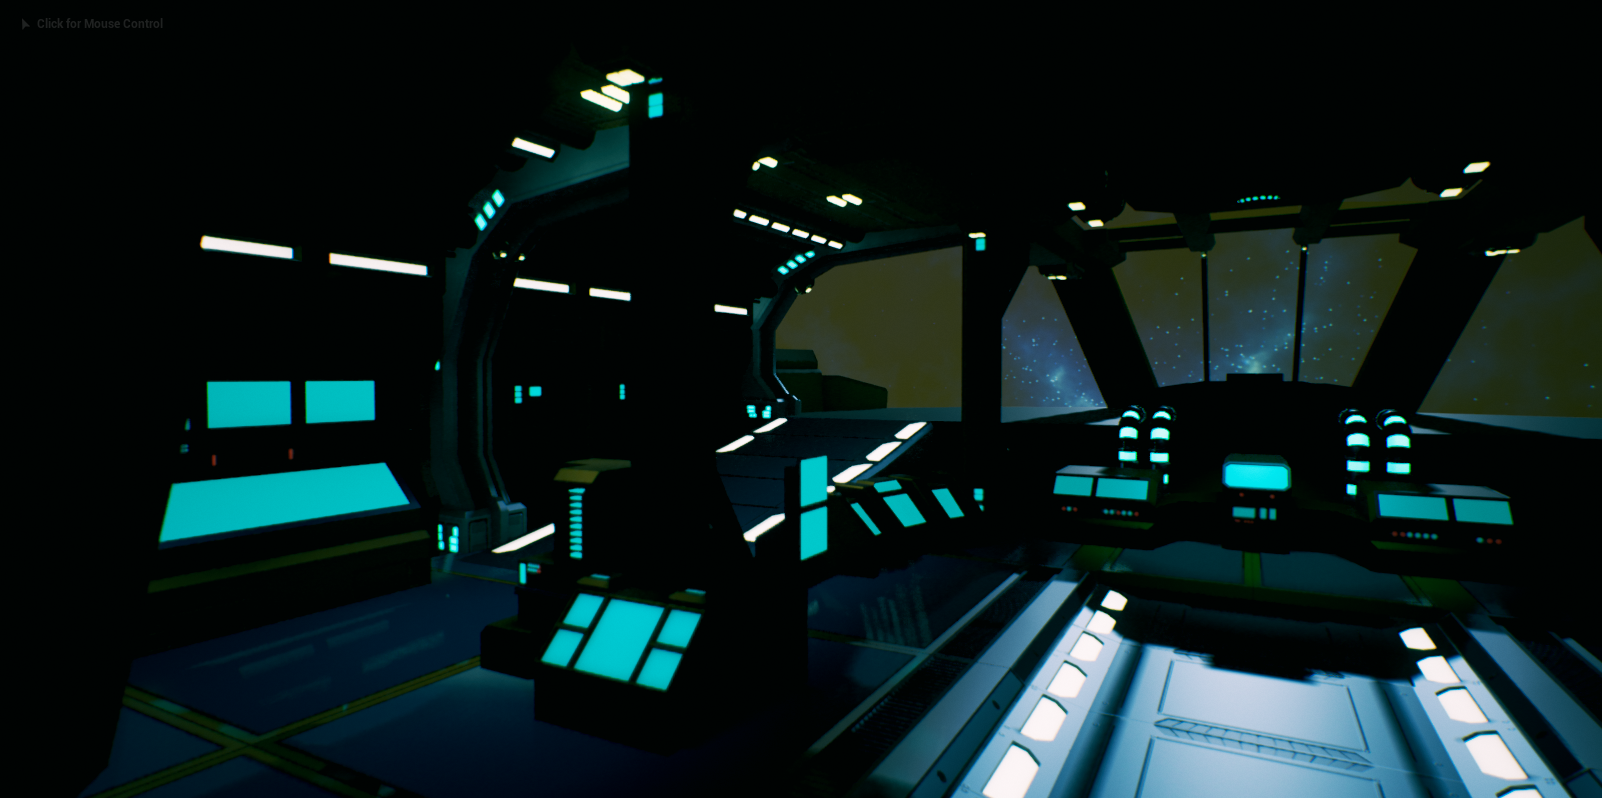 UE4] Lighting doesnt seem right — polycount